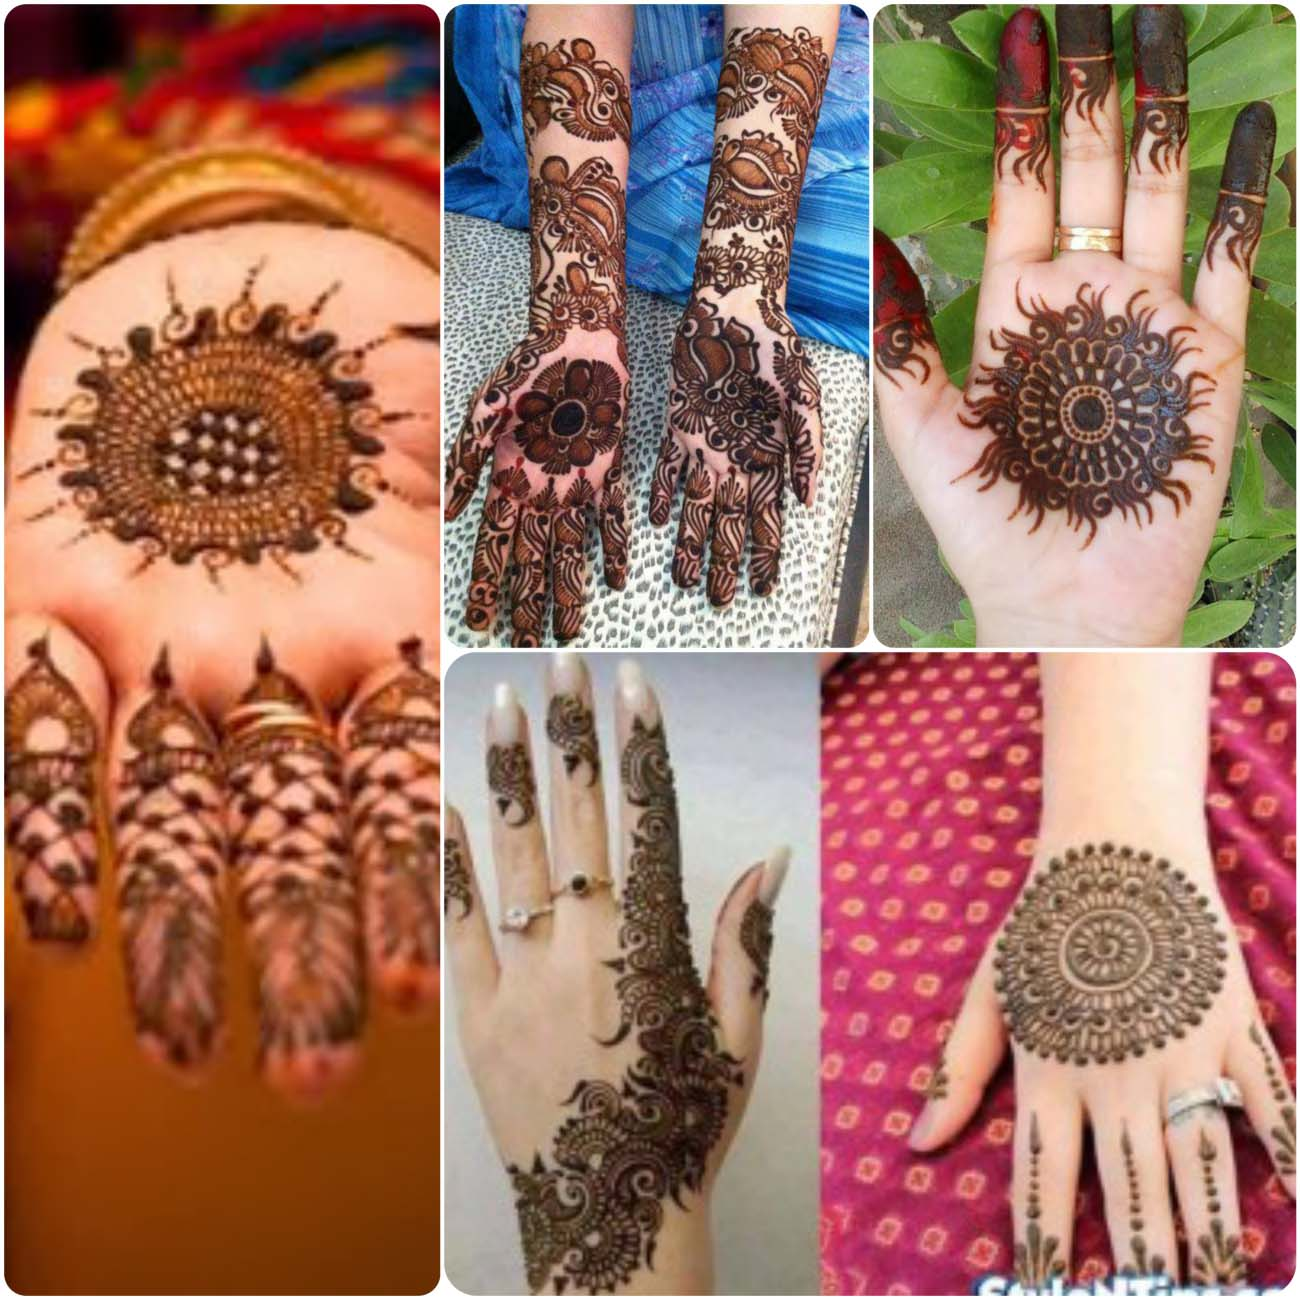 Mehndi design 2017 for teej -  Round Mehndi Designs Is Very Popular Design Right Now As Well As In Past Bridal Mehndi Designs For Full Hands Women Love Their Hands And Want Them To